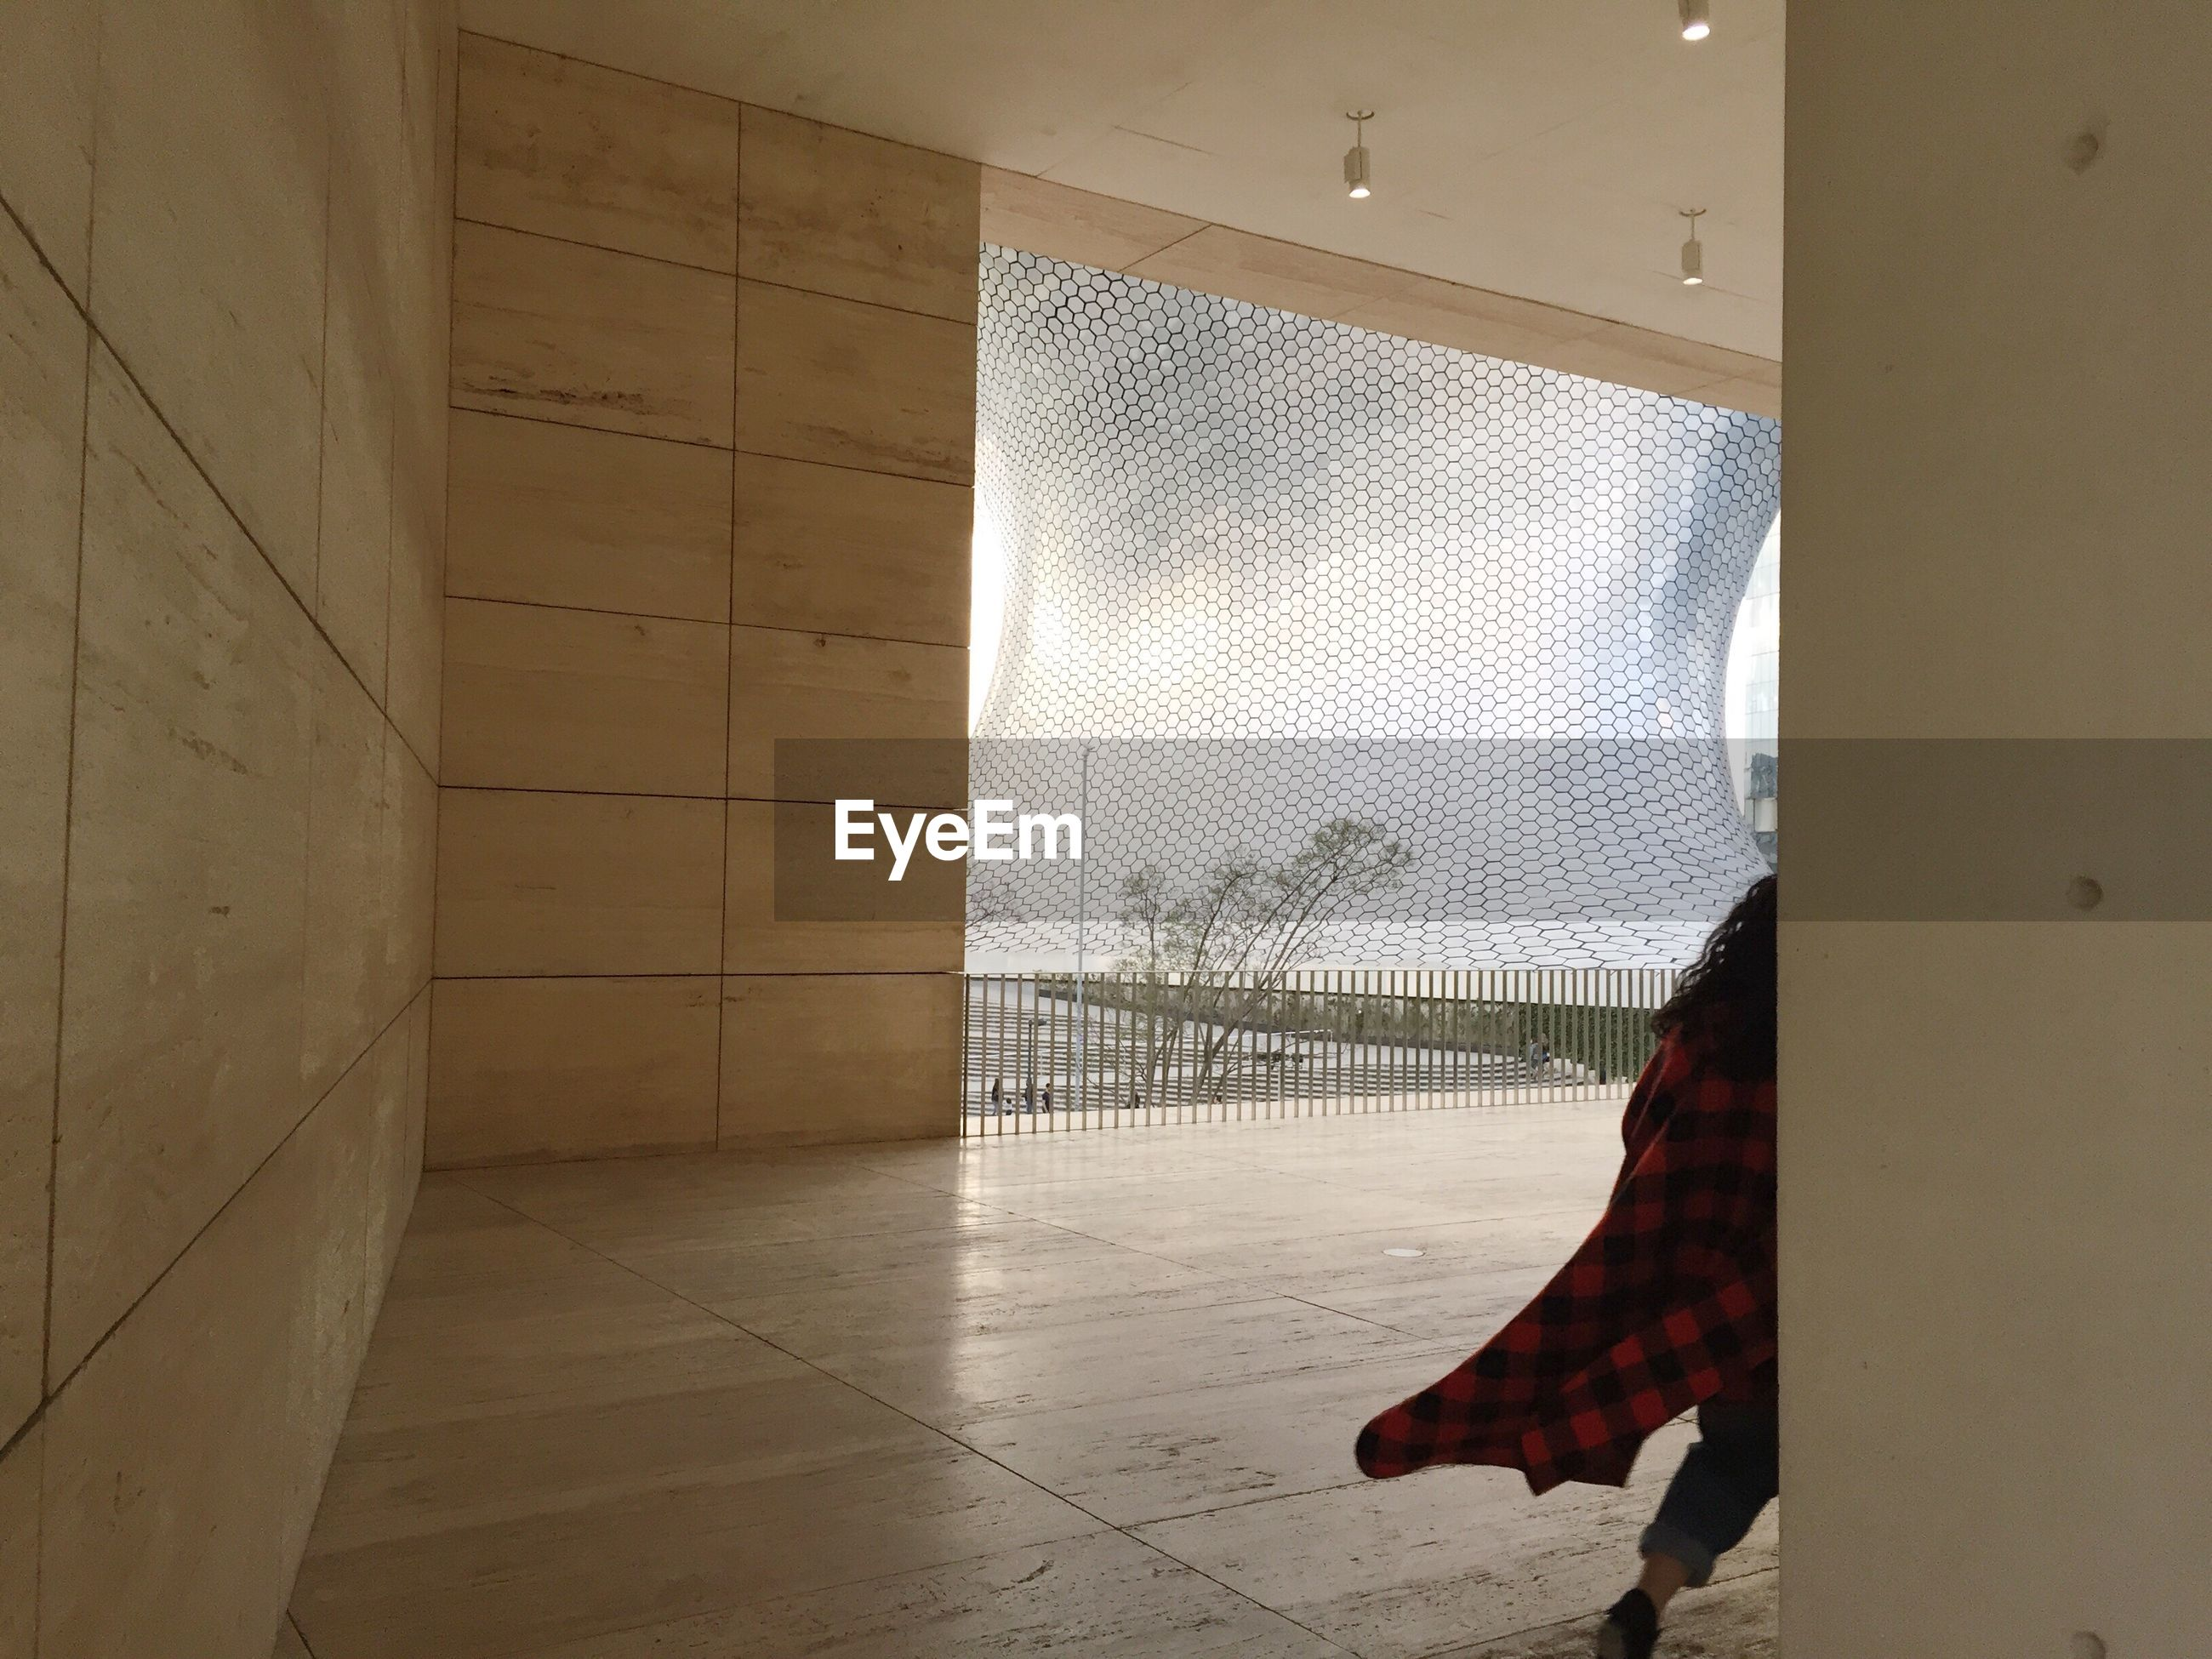 window, no people, indoors, architecture, built structure, day, close-up